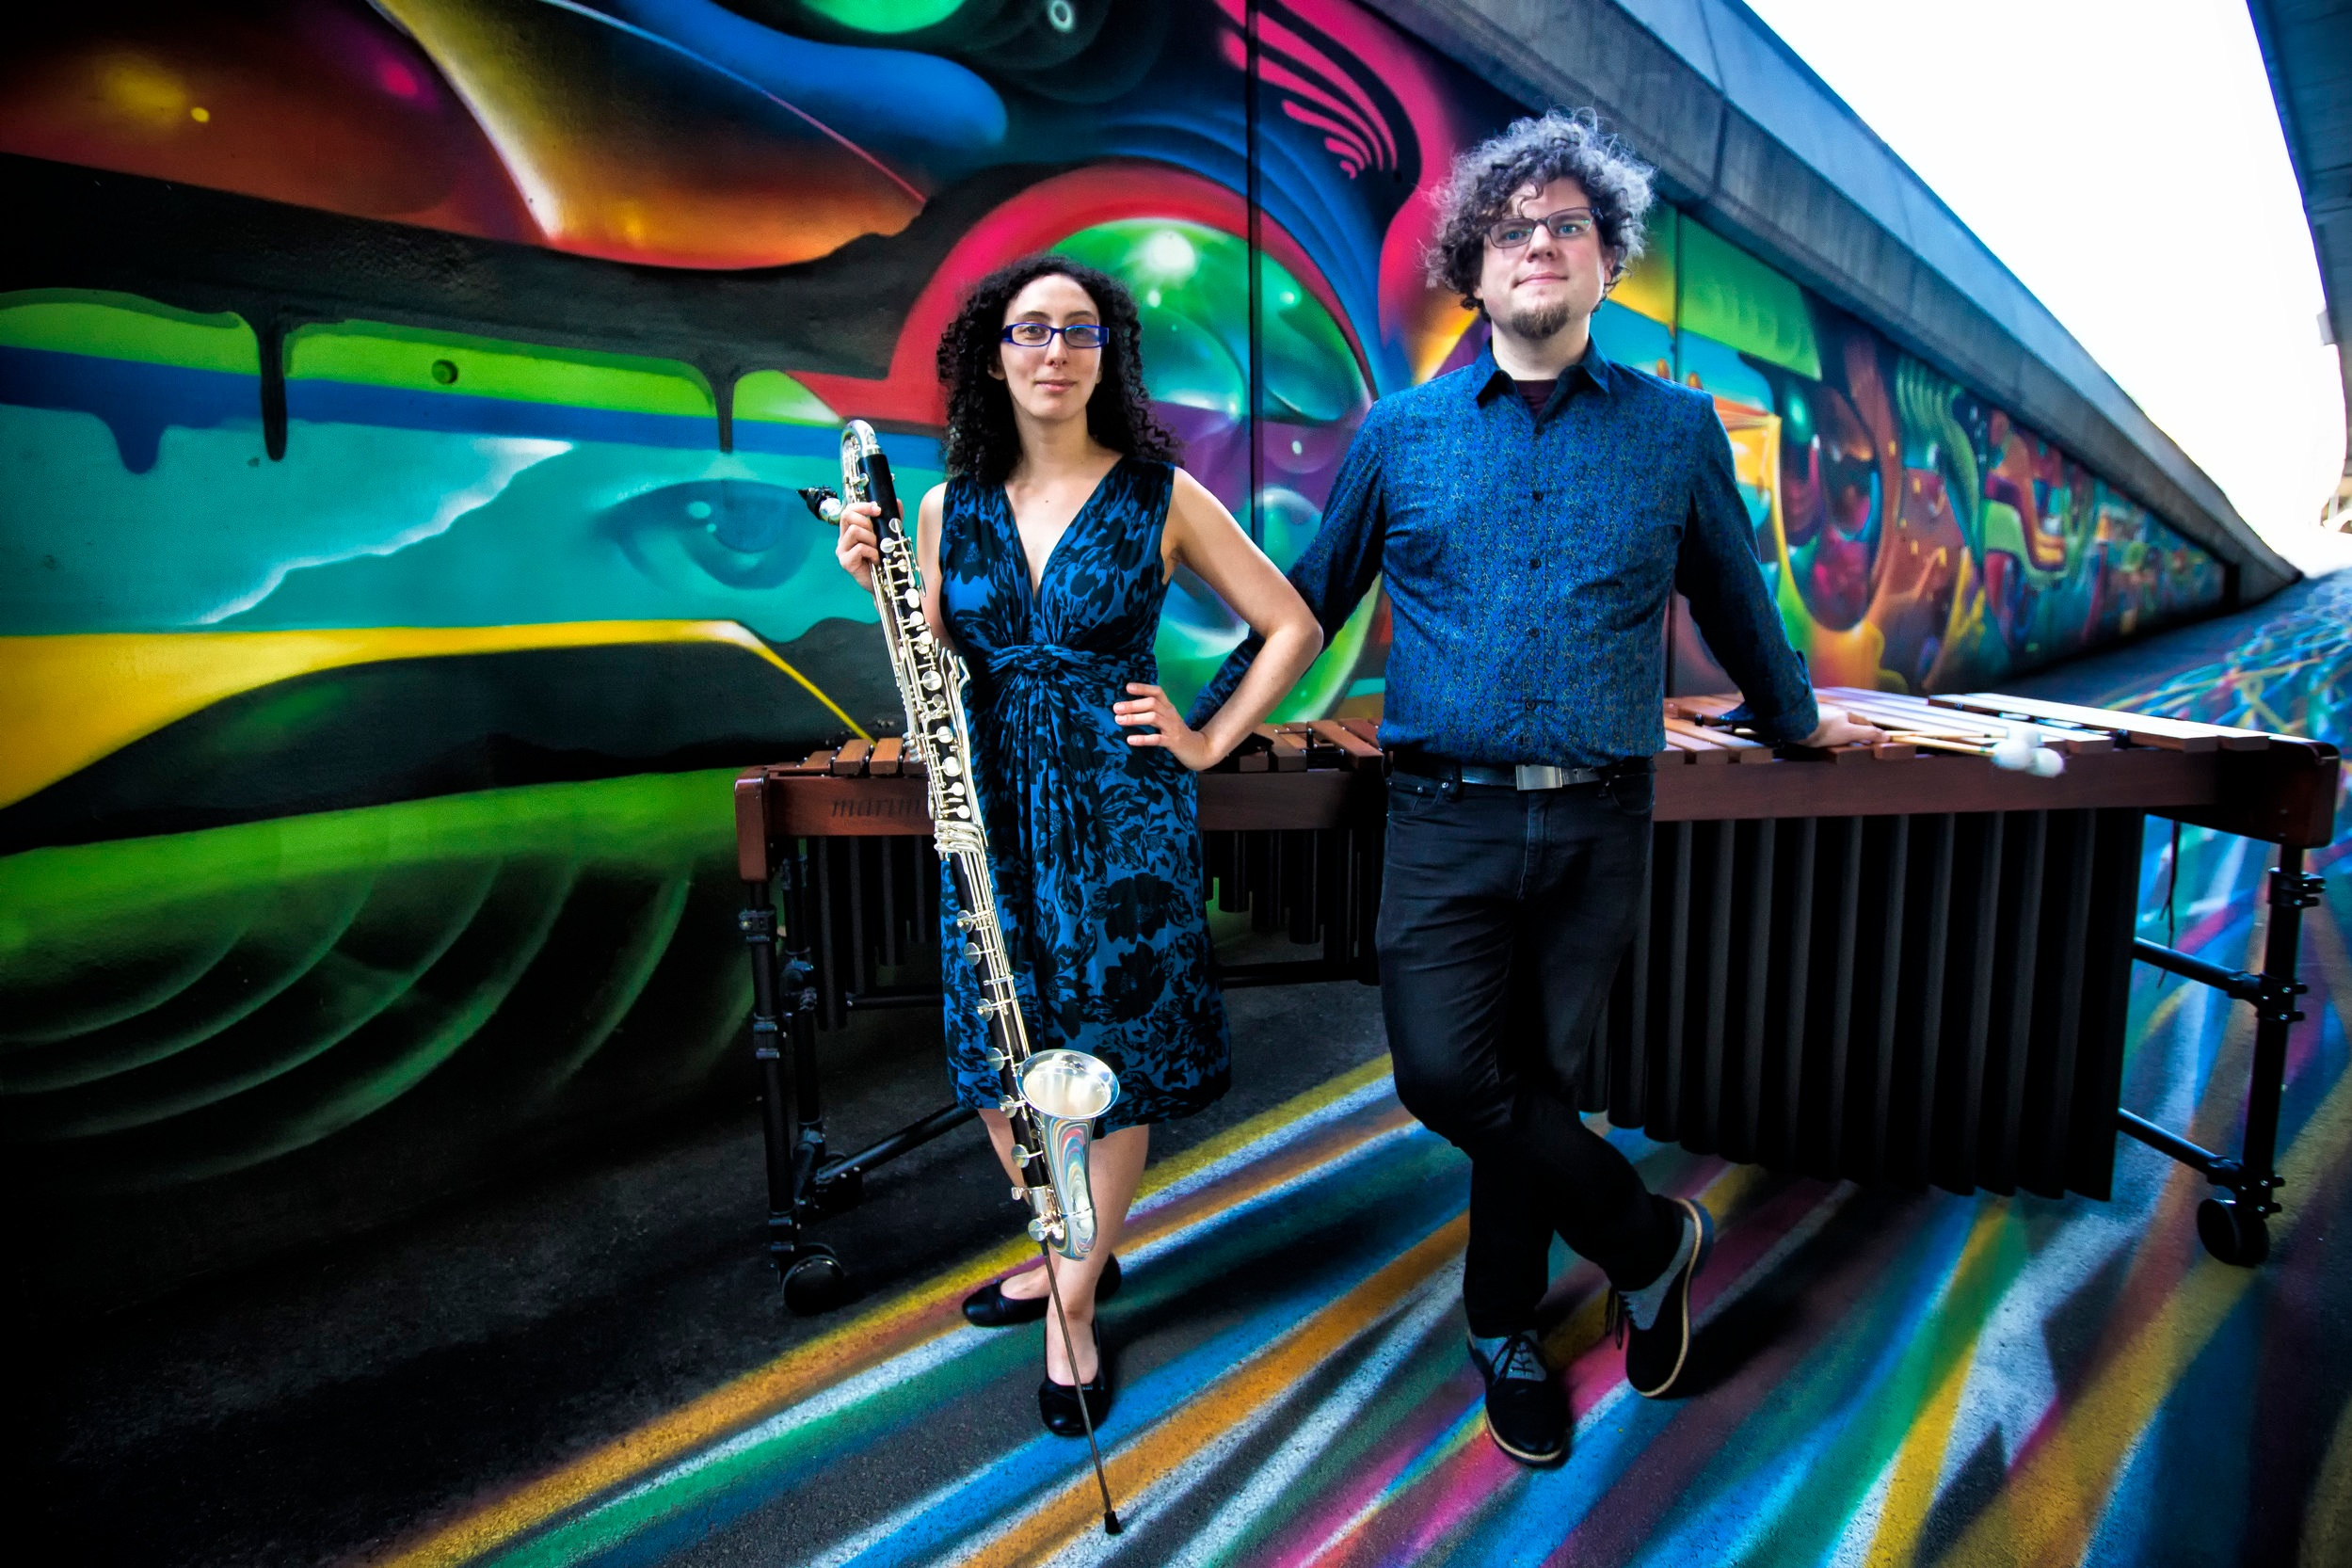 """TETRACTYS PRESENTS: Transient Canvas - The Tetractys Presents Residency features today's most exciting new music ensembles from across the nation. Our second ensemble in residence is the bass clarinet and marimba """"tour de force"""" Transient Canvas. We are PUMPED for this one!"""